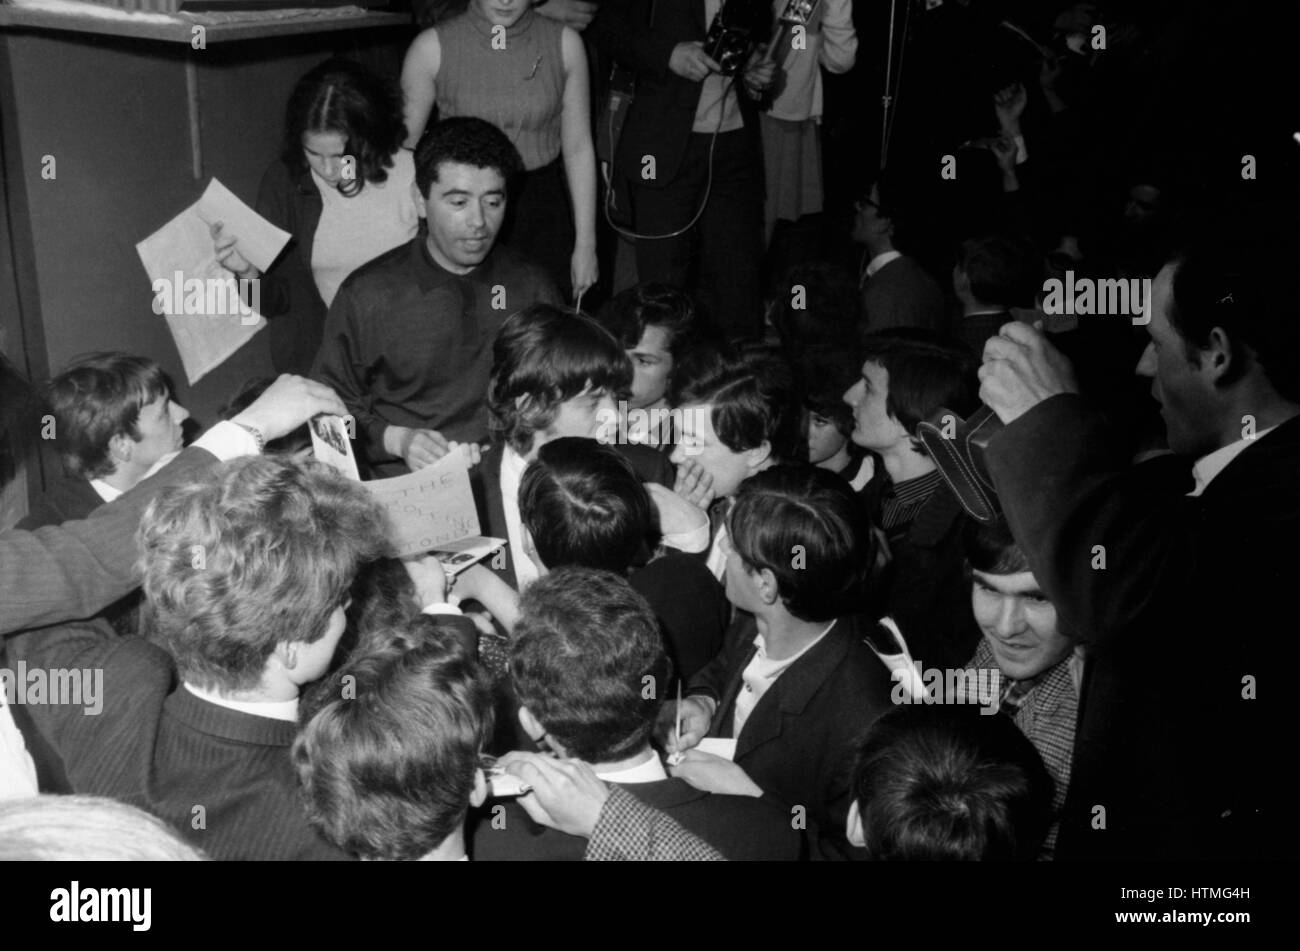 British singer of the Rolling Stones Mick Jagger signing autographs in the backstage of the Golf-Drouot in Paris - Stock Image